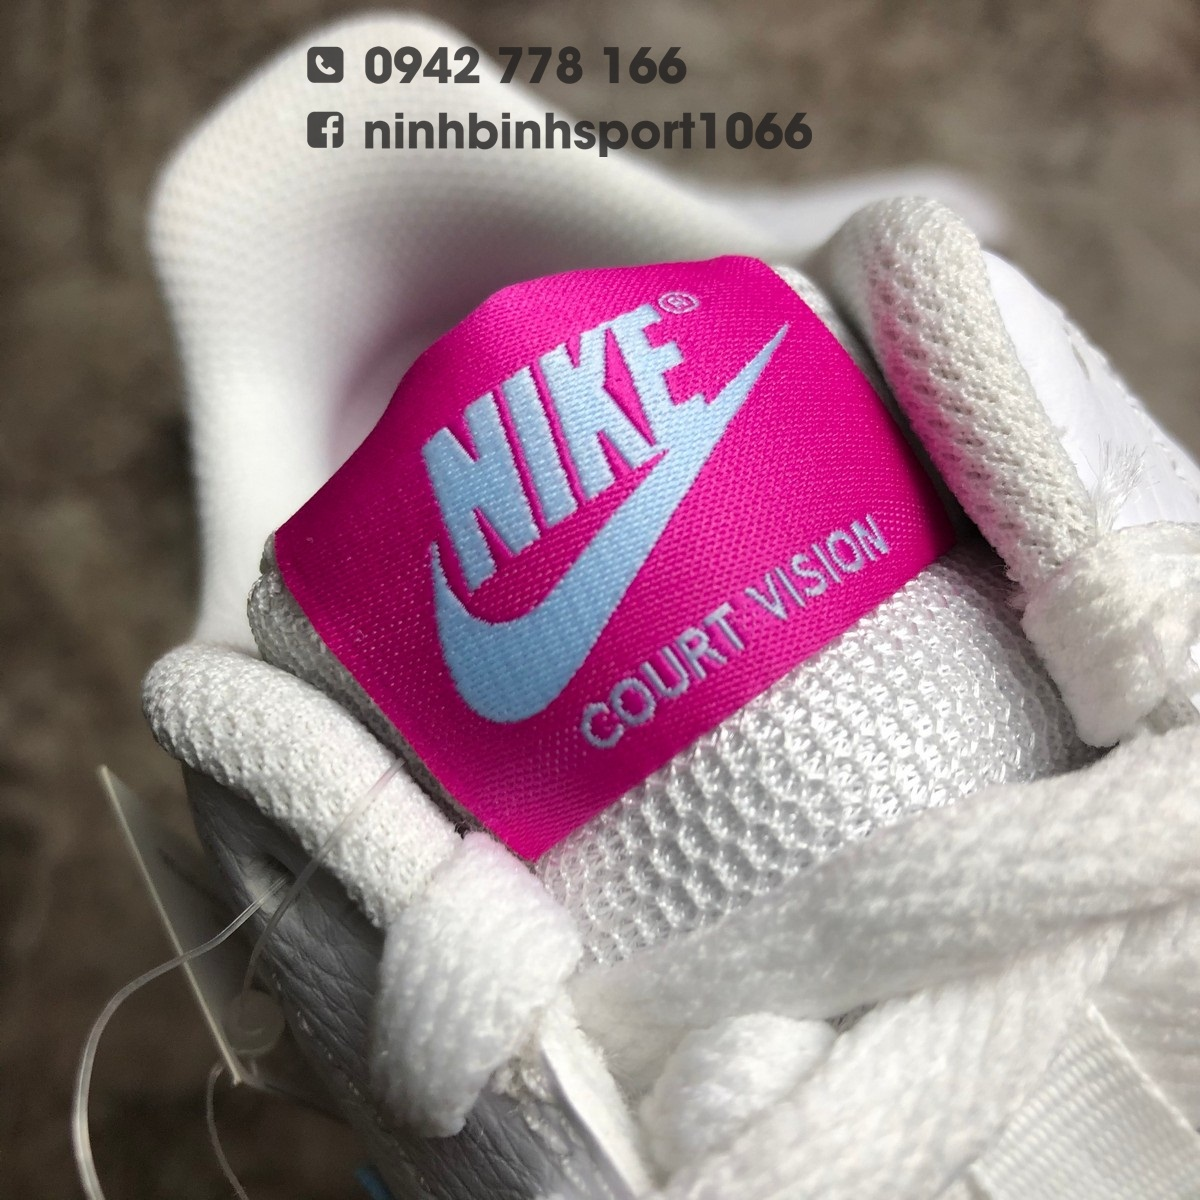 Giầy thể thao nữ Nike Court Vision Low CD5434-104